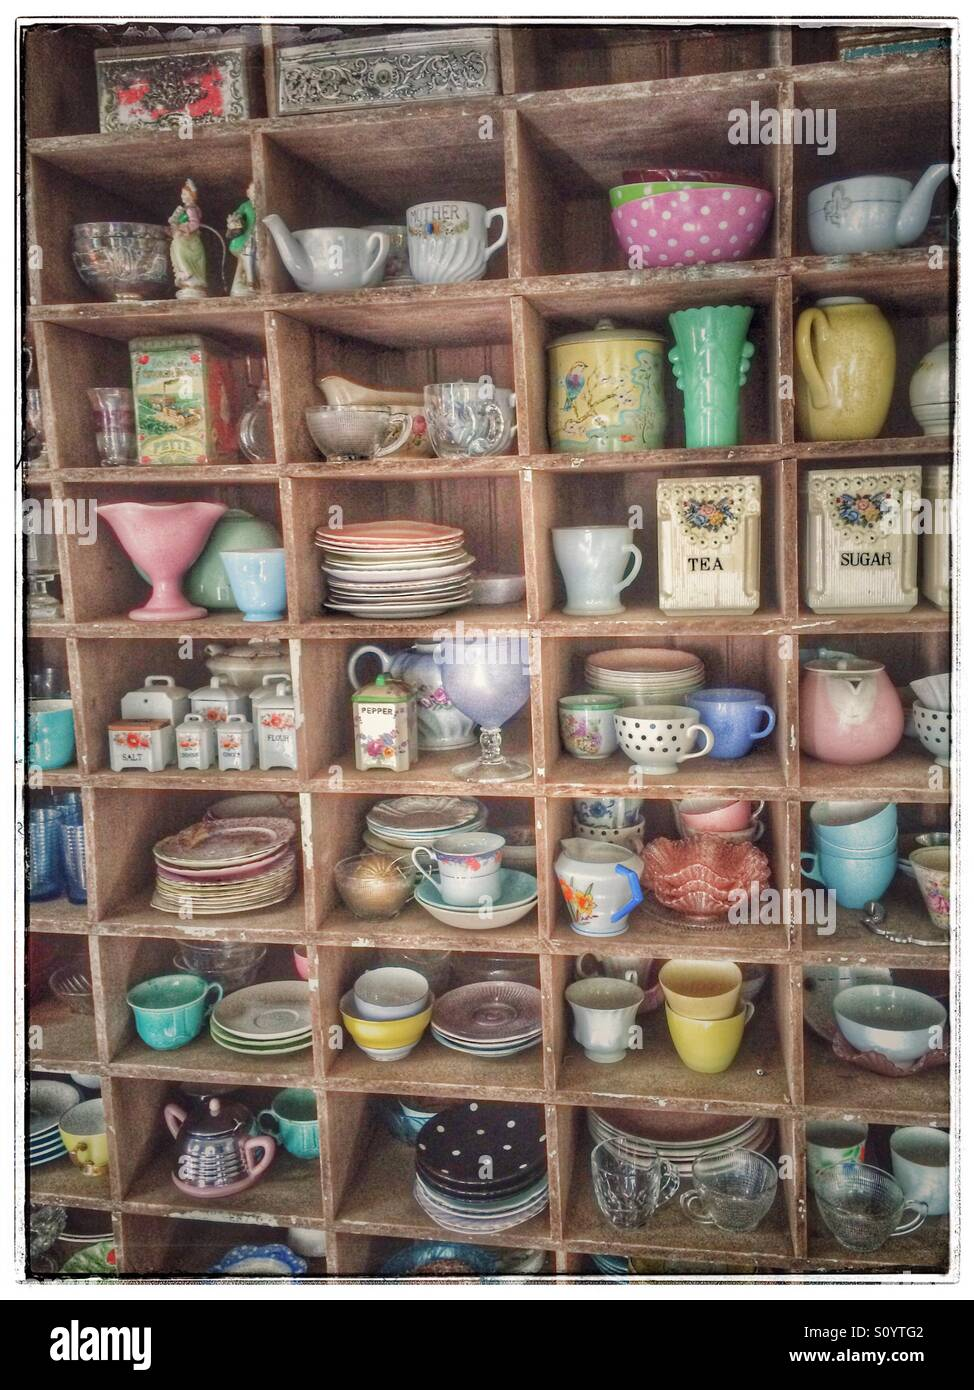 Shelf with vintage cups and saucers on display. - Stock Image